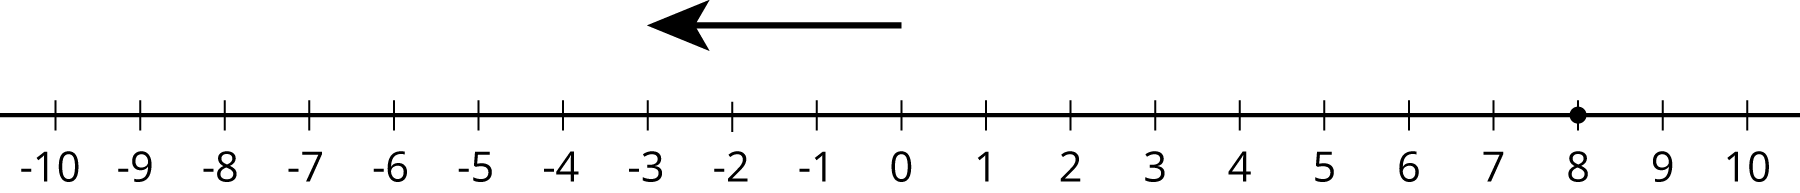 A number line with the numbers negative 10 through 10 indicated. Above the number line, an arrow pointing left starts at 0 and ends at negative 3. A solid dot is indicated at 8.